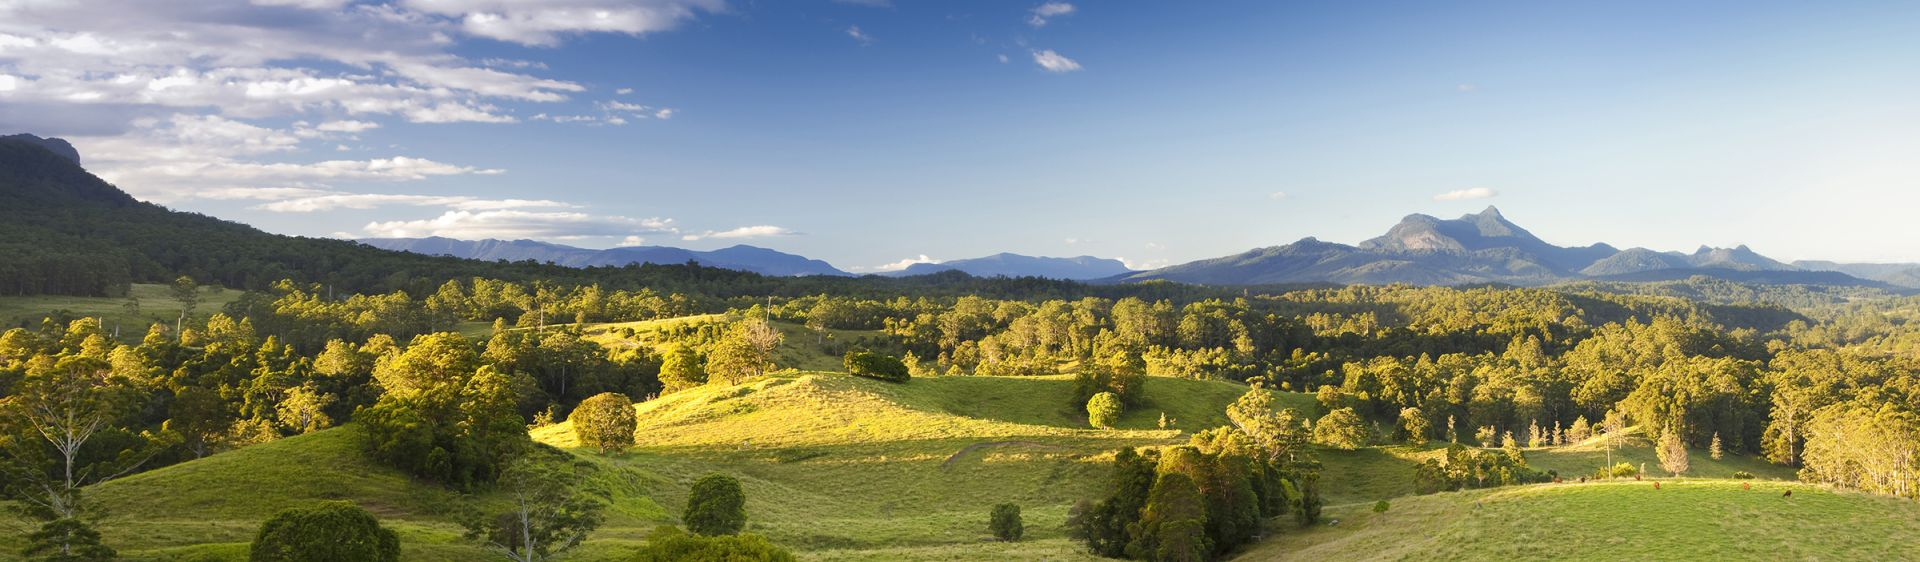 Murwillumbah hinterland with Mount Warning in the distance, The Tweed region